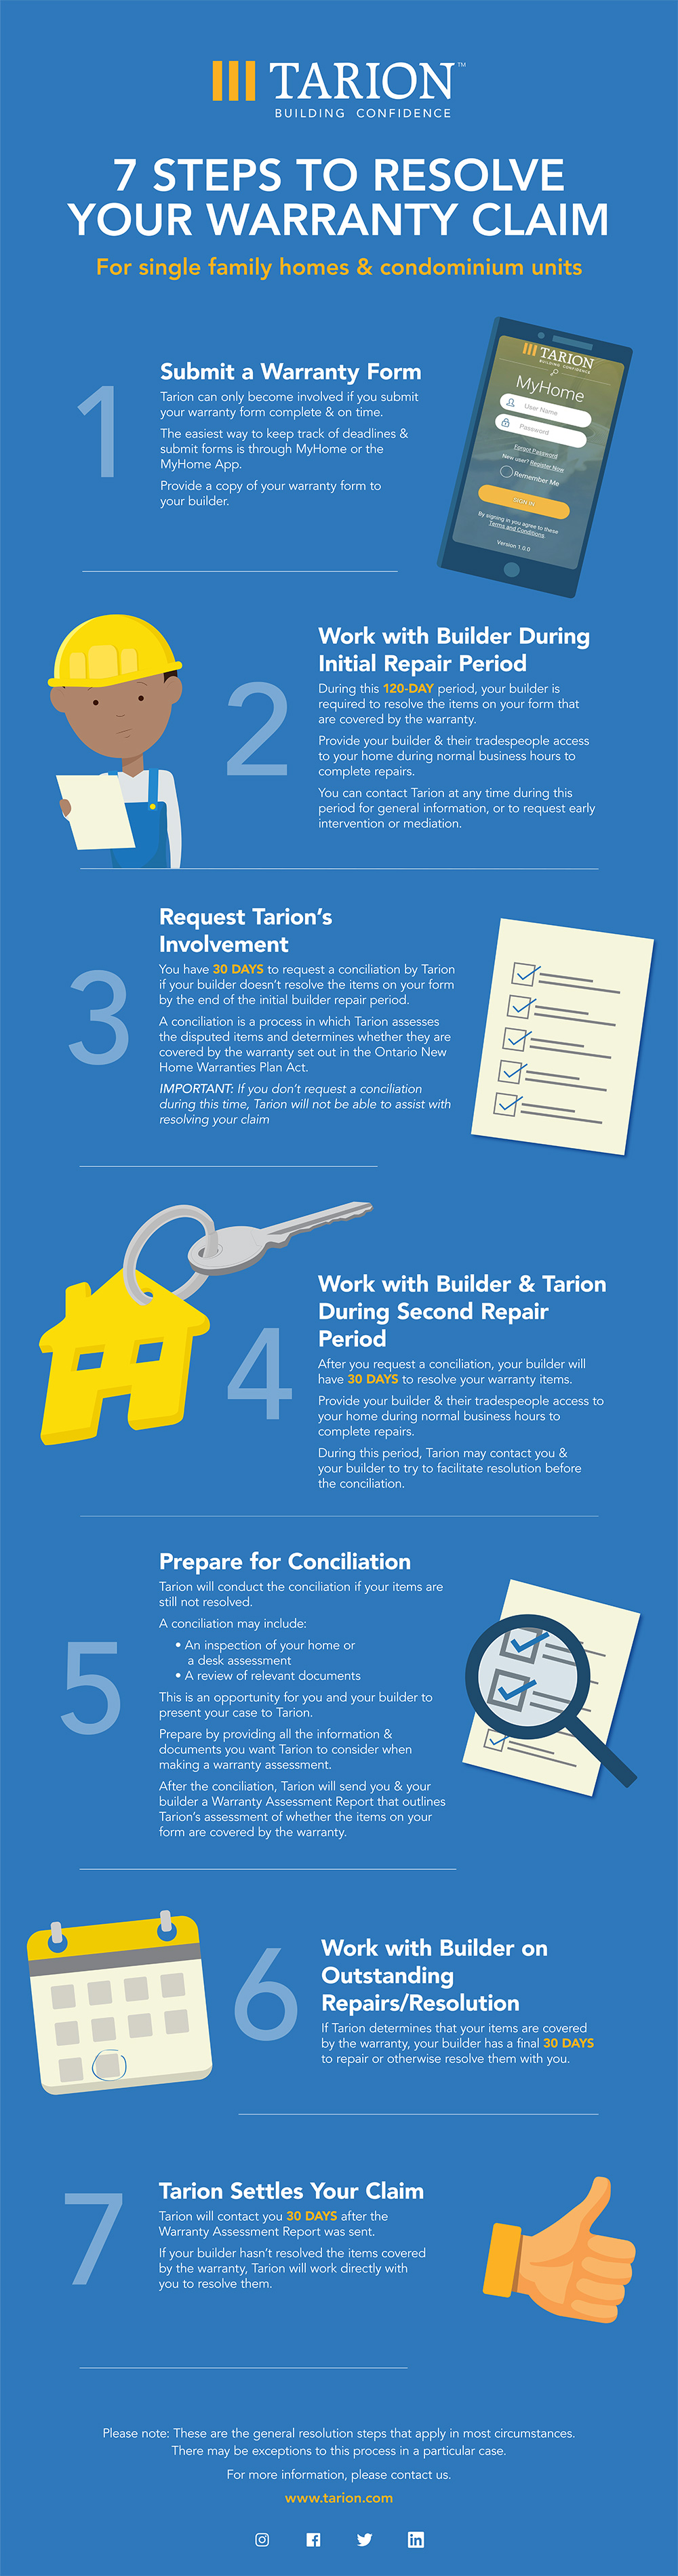 What If My Builder Does Not Resolve Warranty Items? | Tarion com